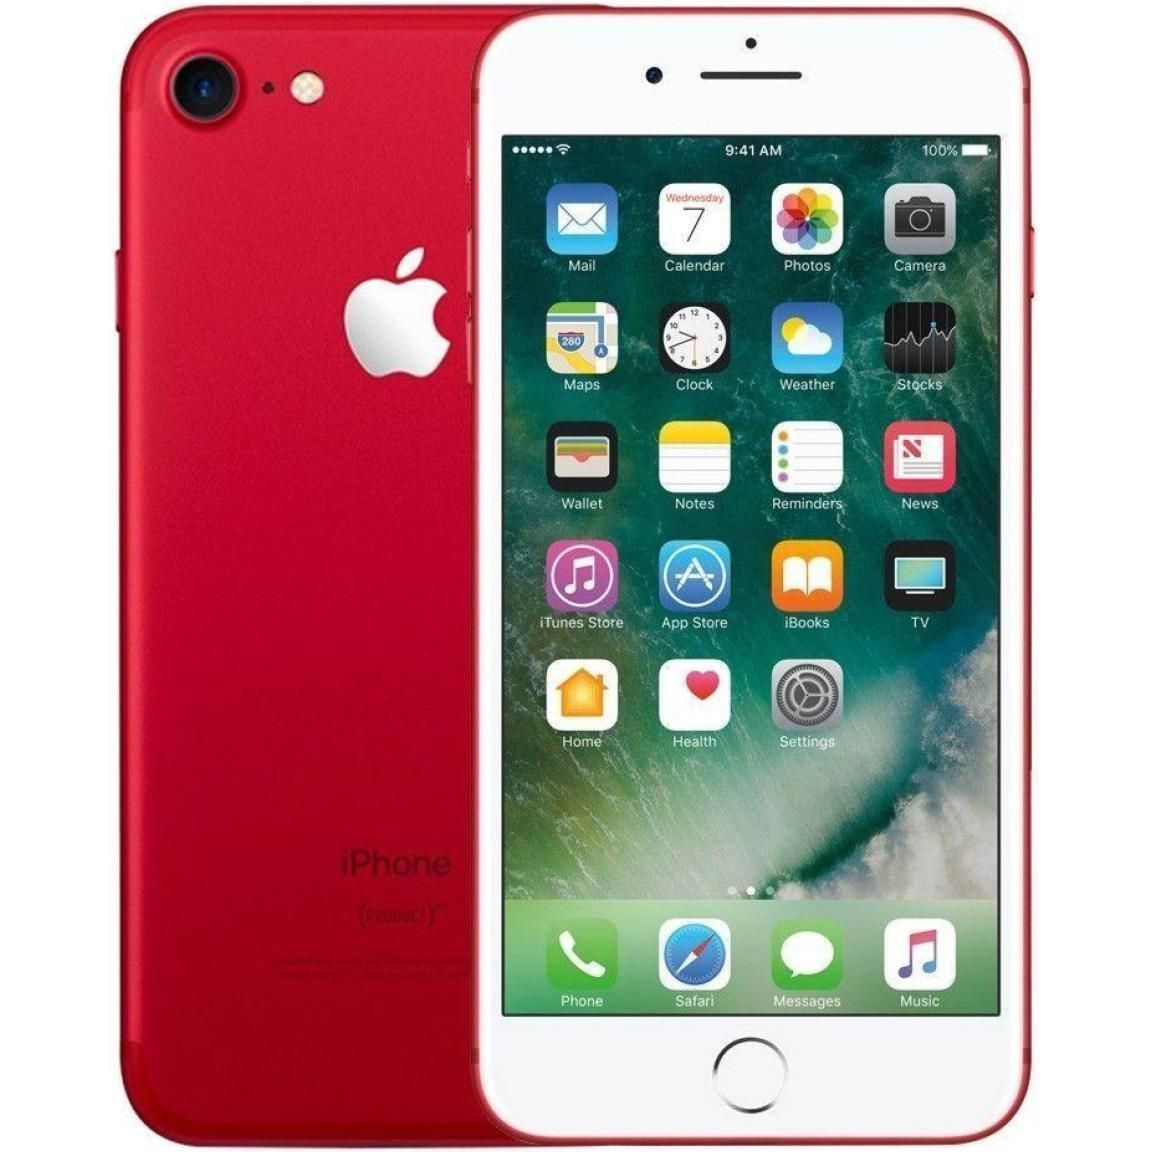 354 99 Apple Iphone 7 Product Red 256gb Gsm Unlocked At T T Mobile Smartphone Apple Iphone Productred 256gb Apple Iphone Iphone Smartphone